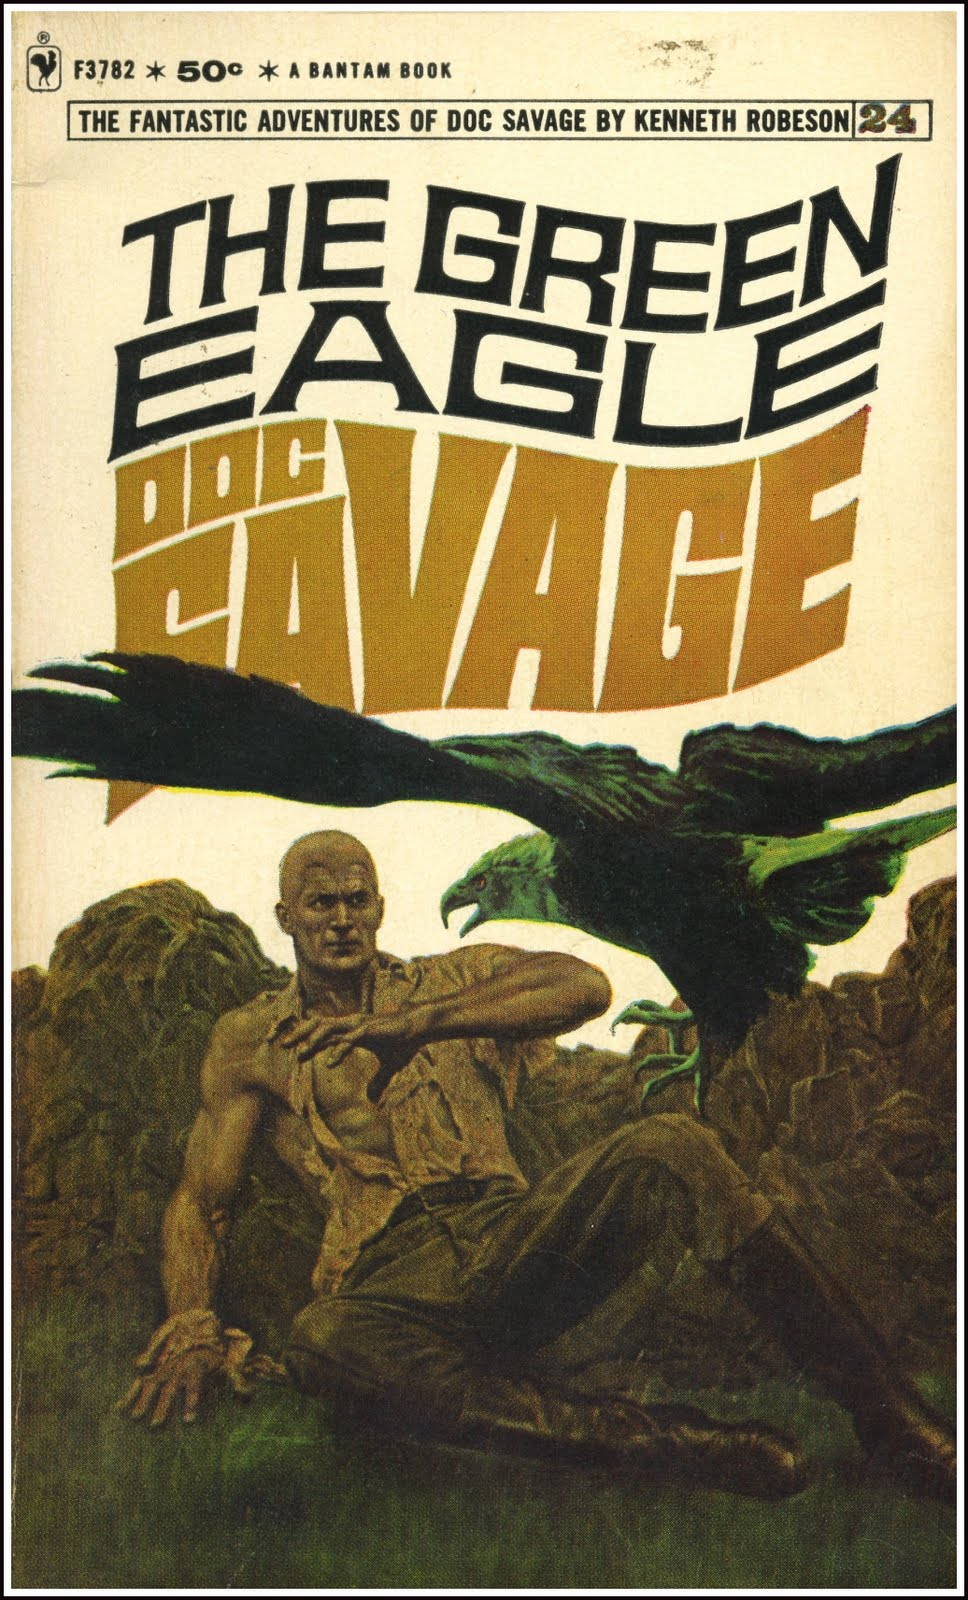 The Man of Bronze (Doc Savage 1) by Kenneth Robeson